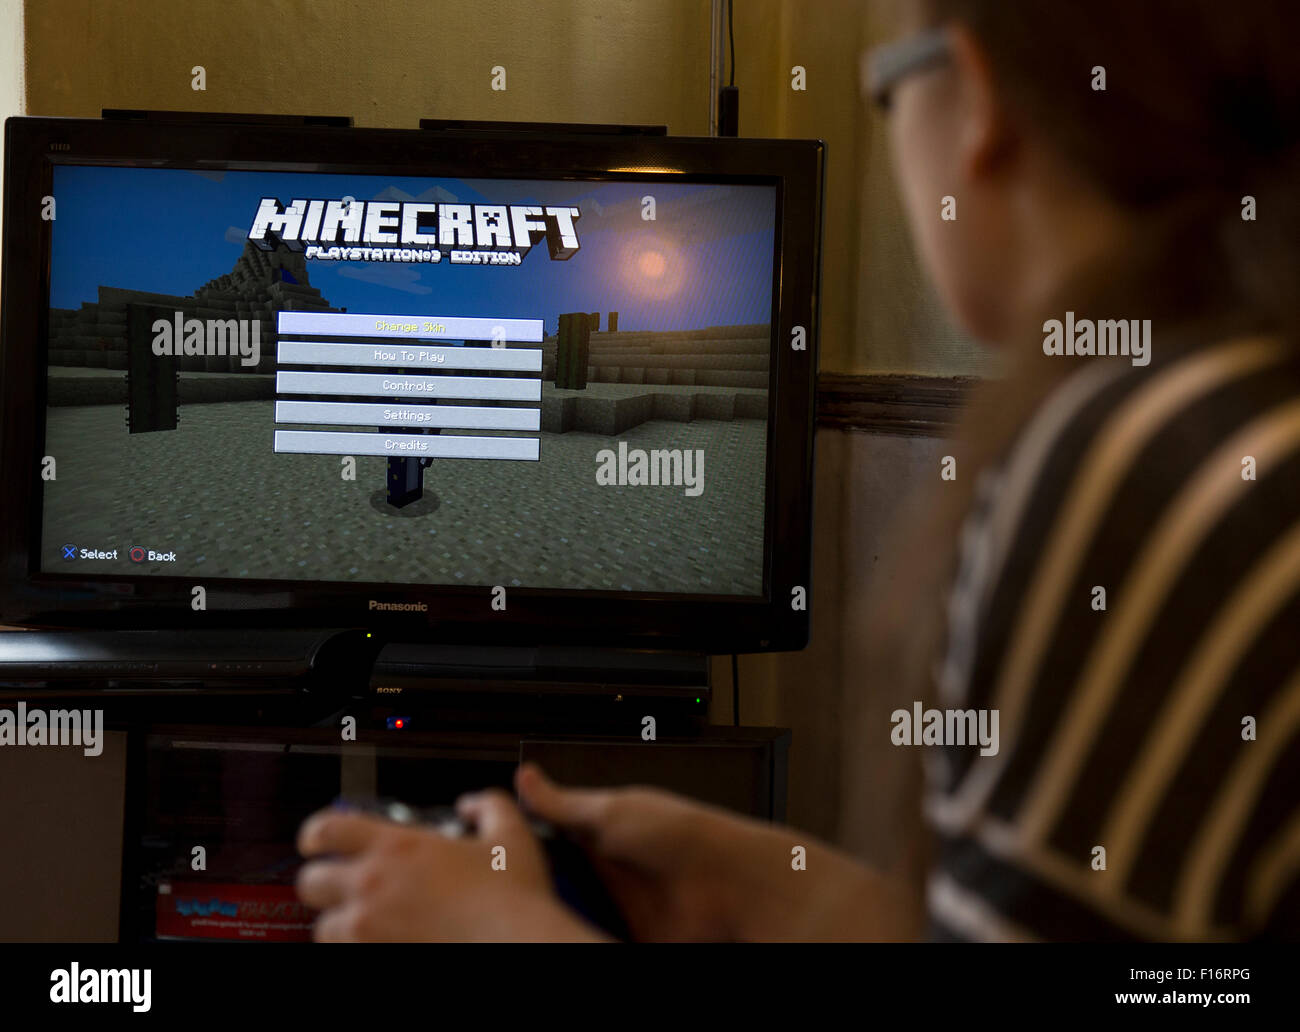 Teenage girl plays the video game Minecraft on a video consol - Stock Image